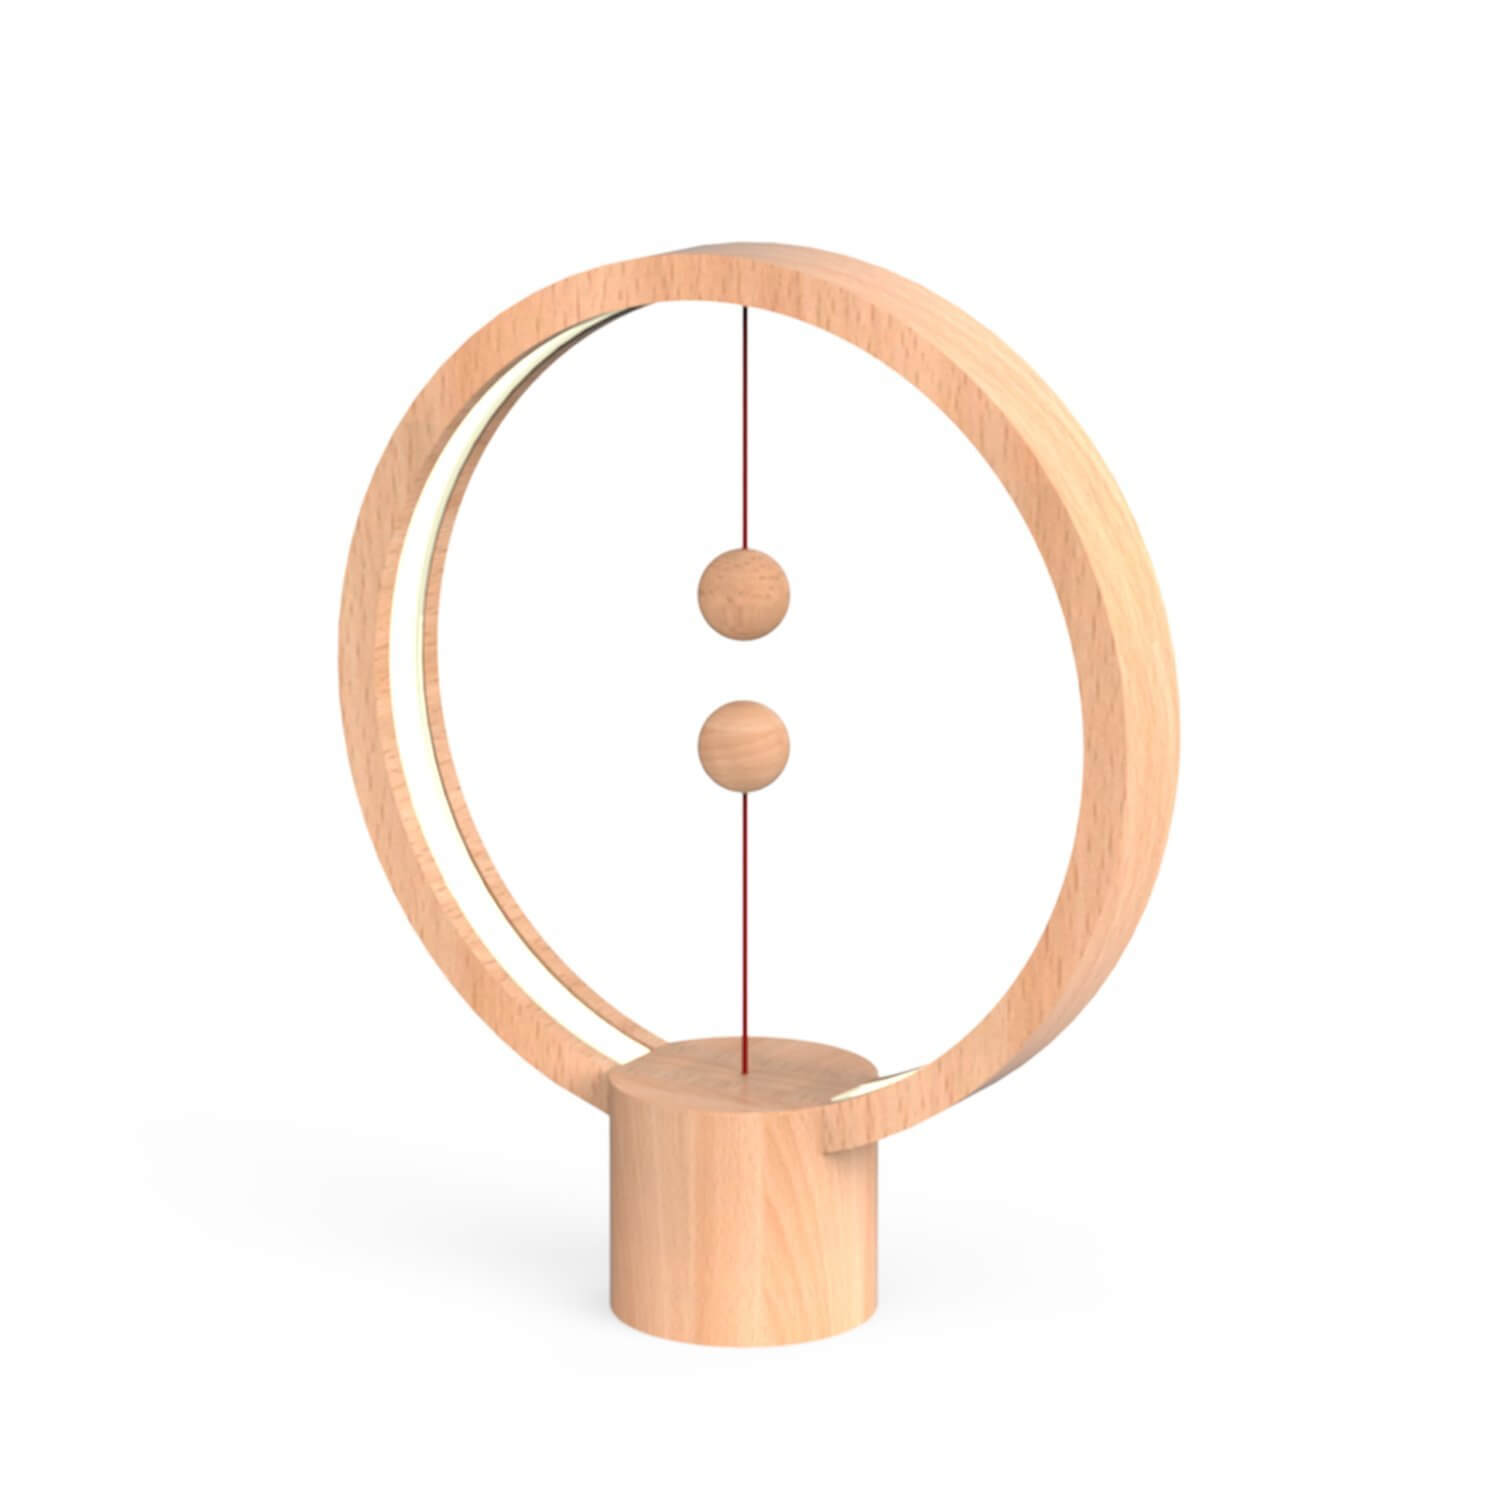 Lampe de table ronde Heng Balance bois naturel